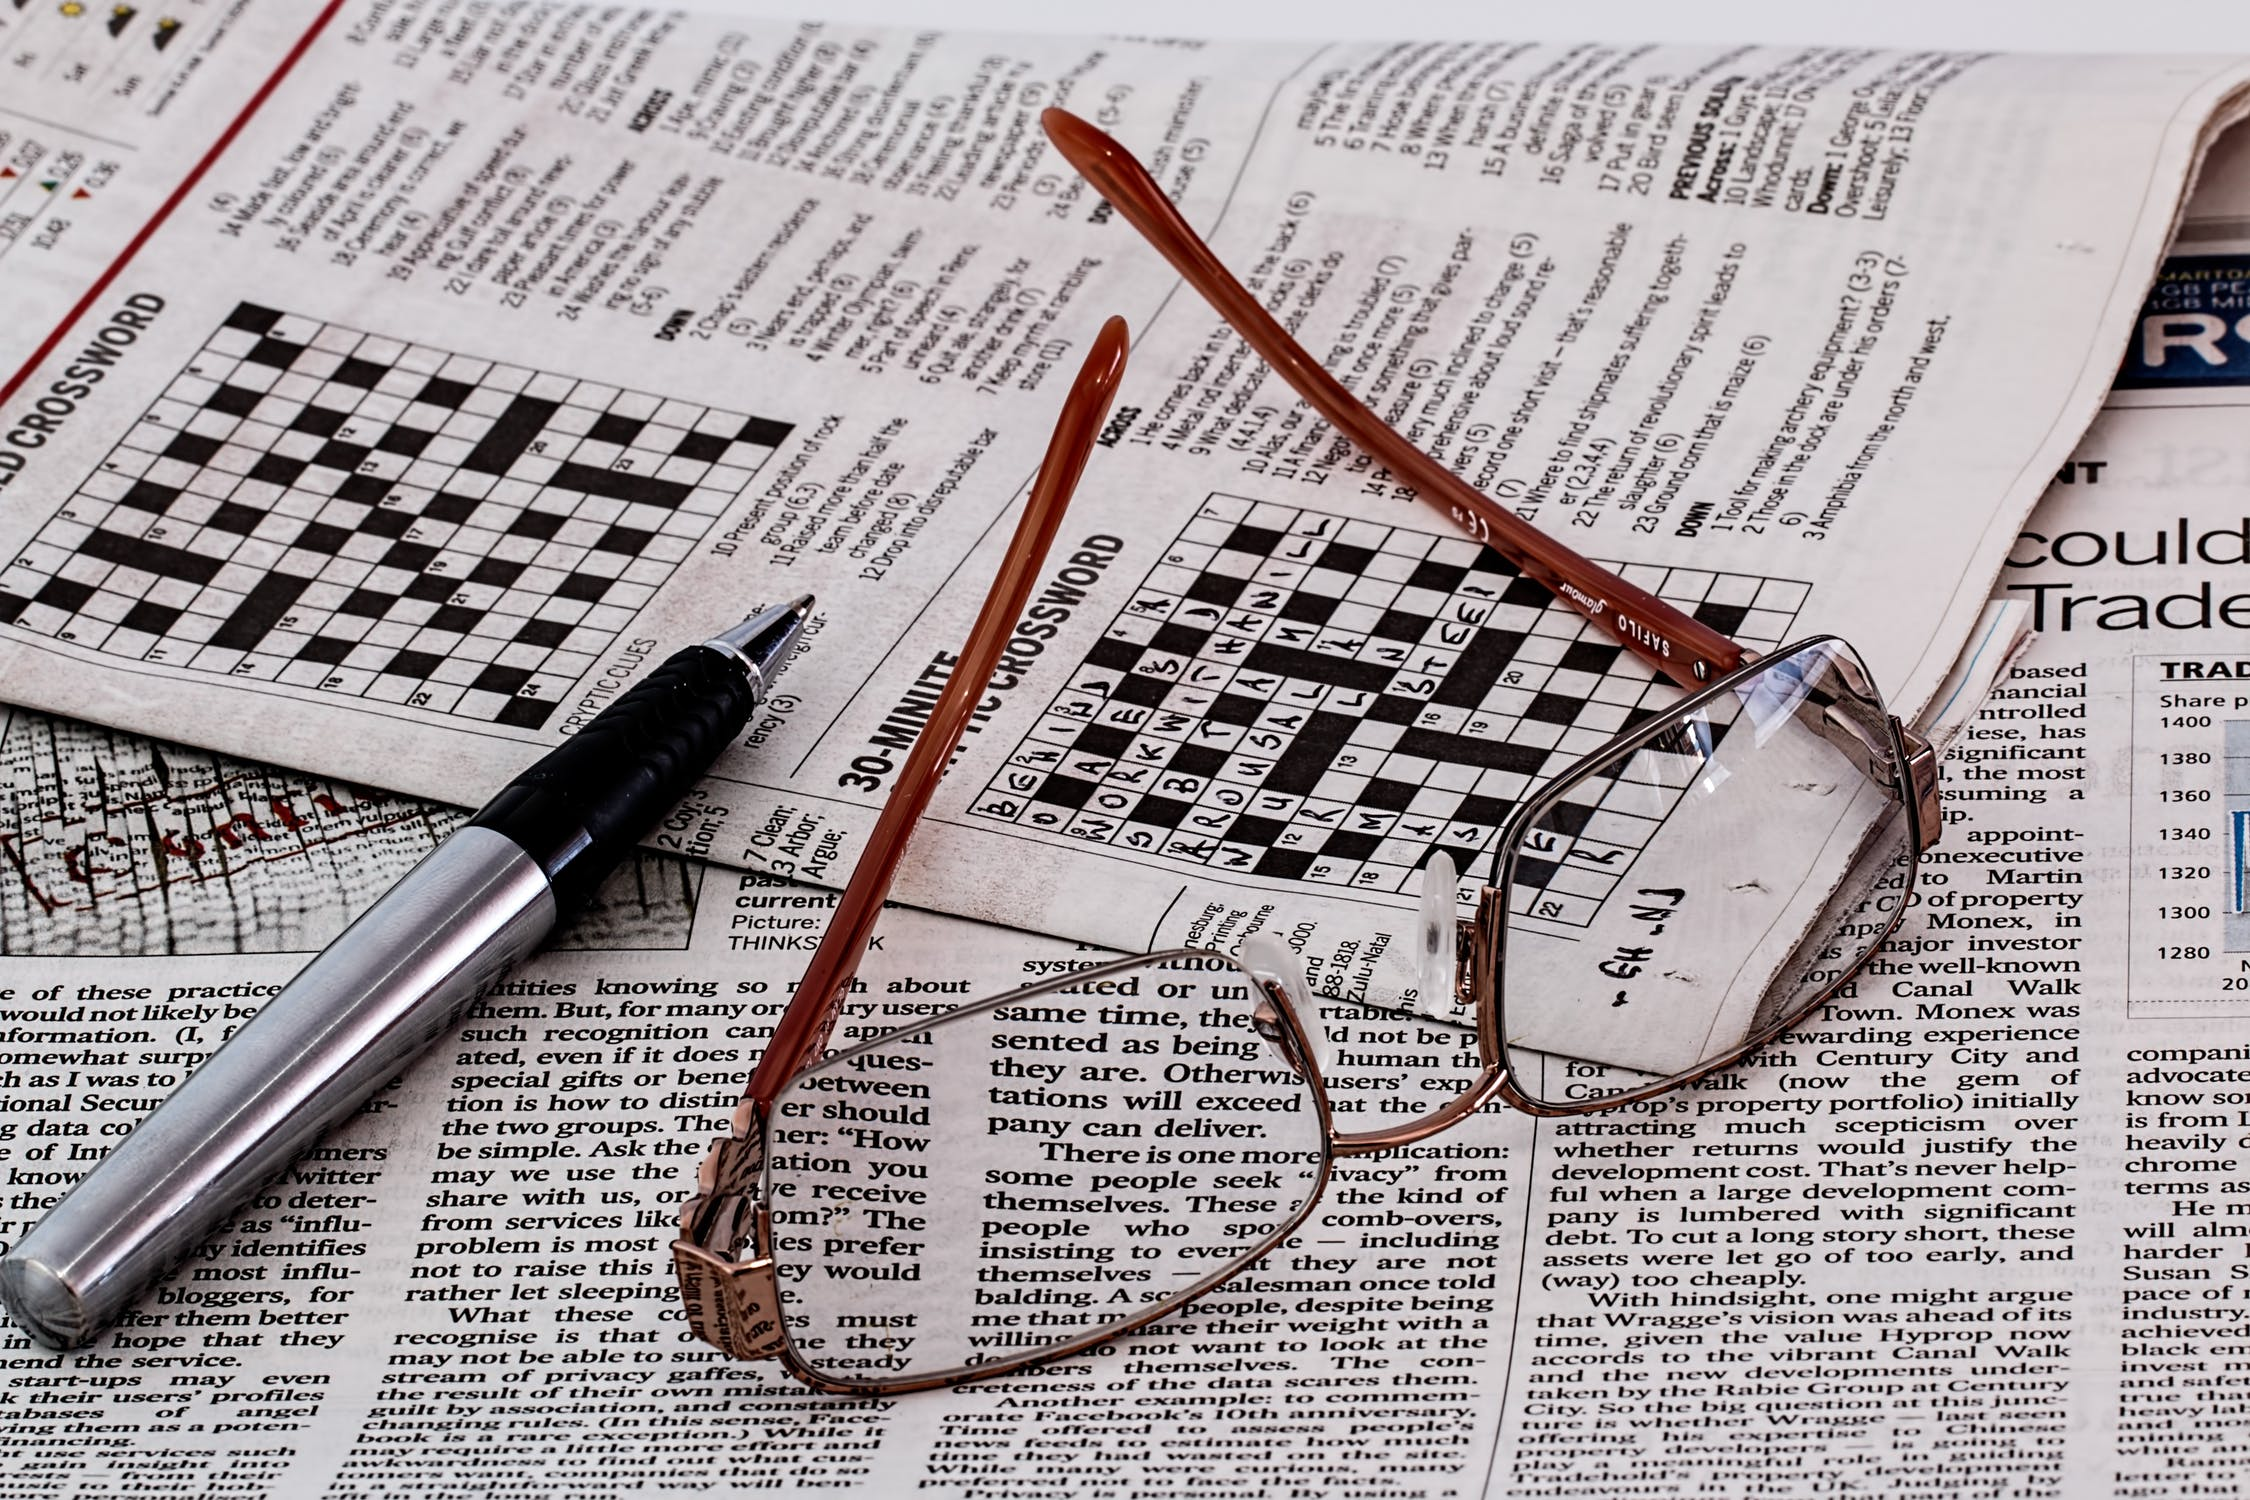 Eyeglasses and pen on top of newspaper crossword